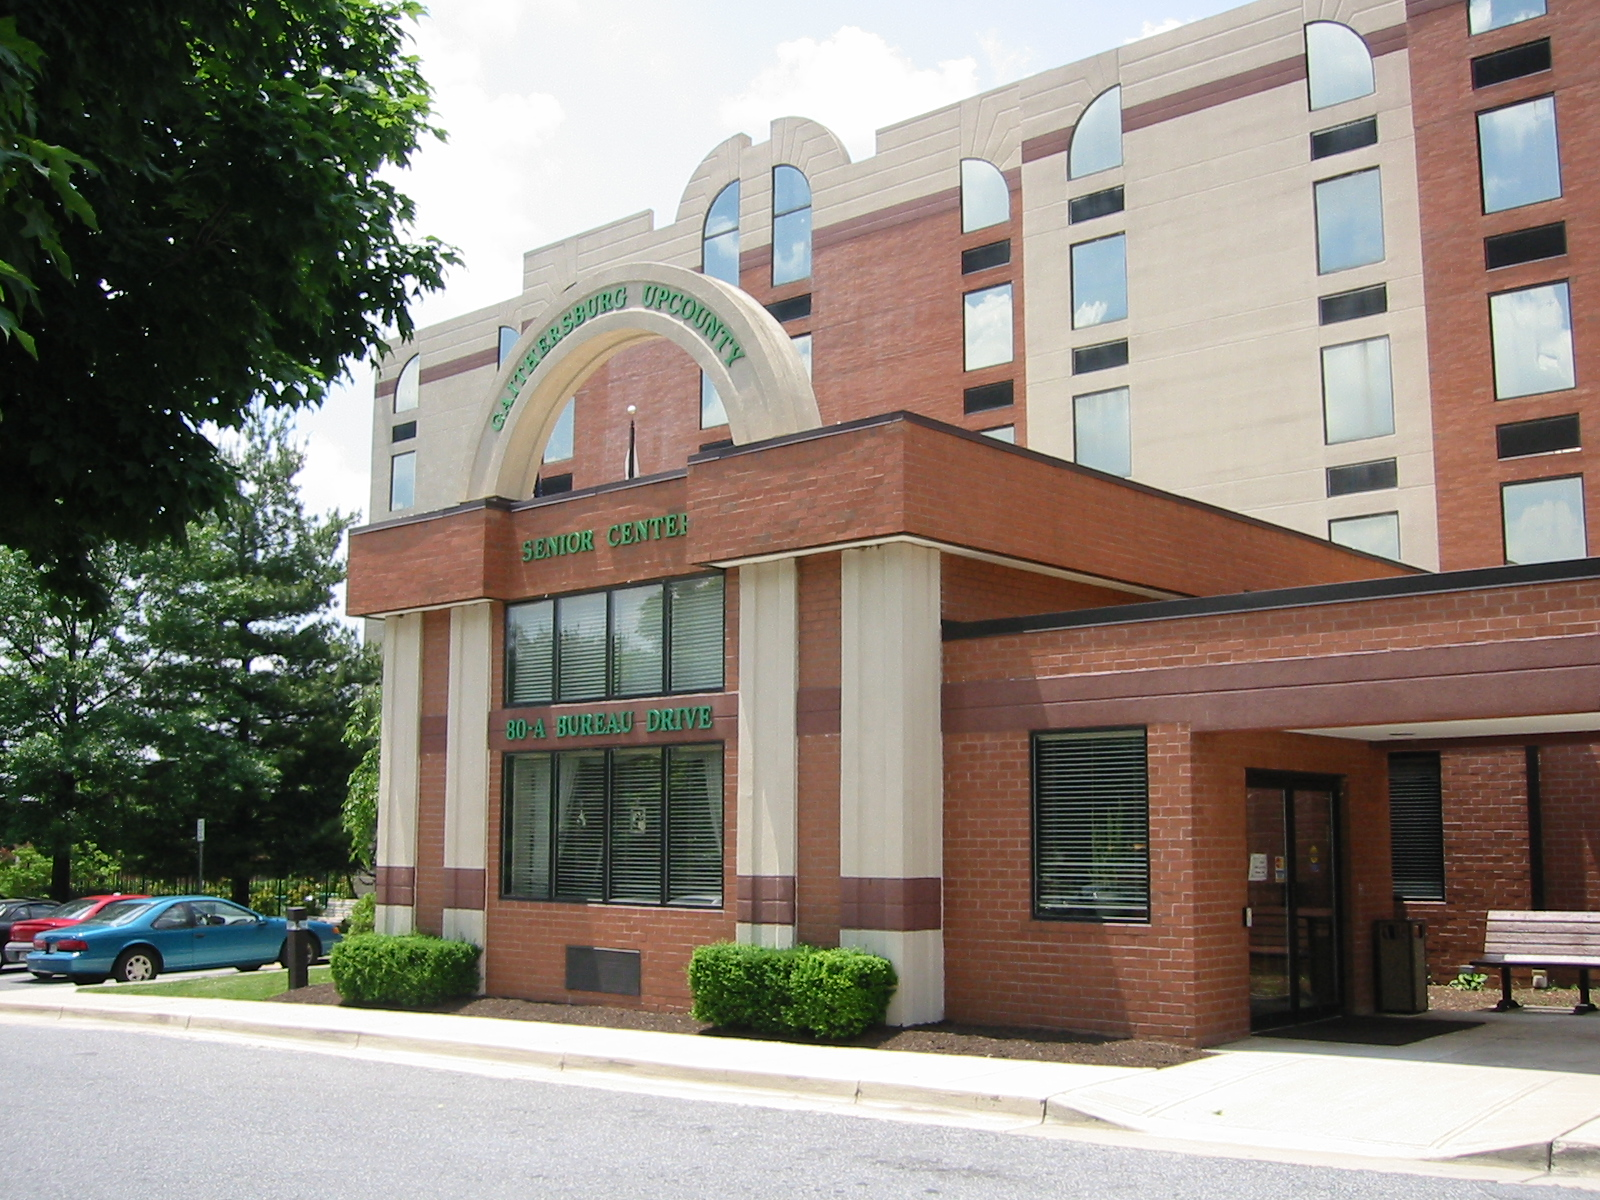 photo Upcounty Senior Center in Gaithersburg